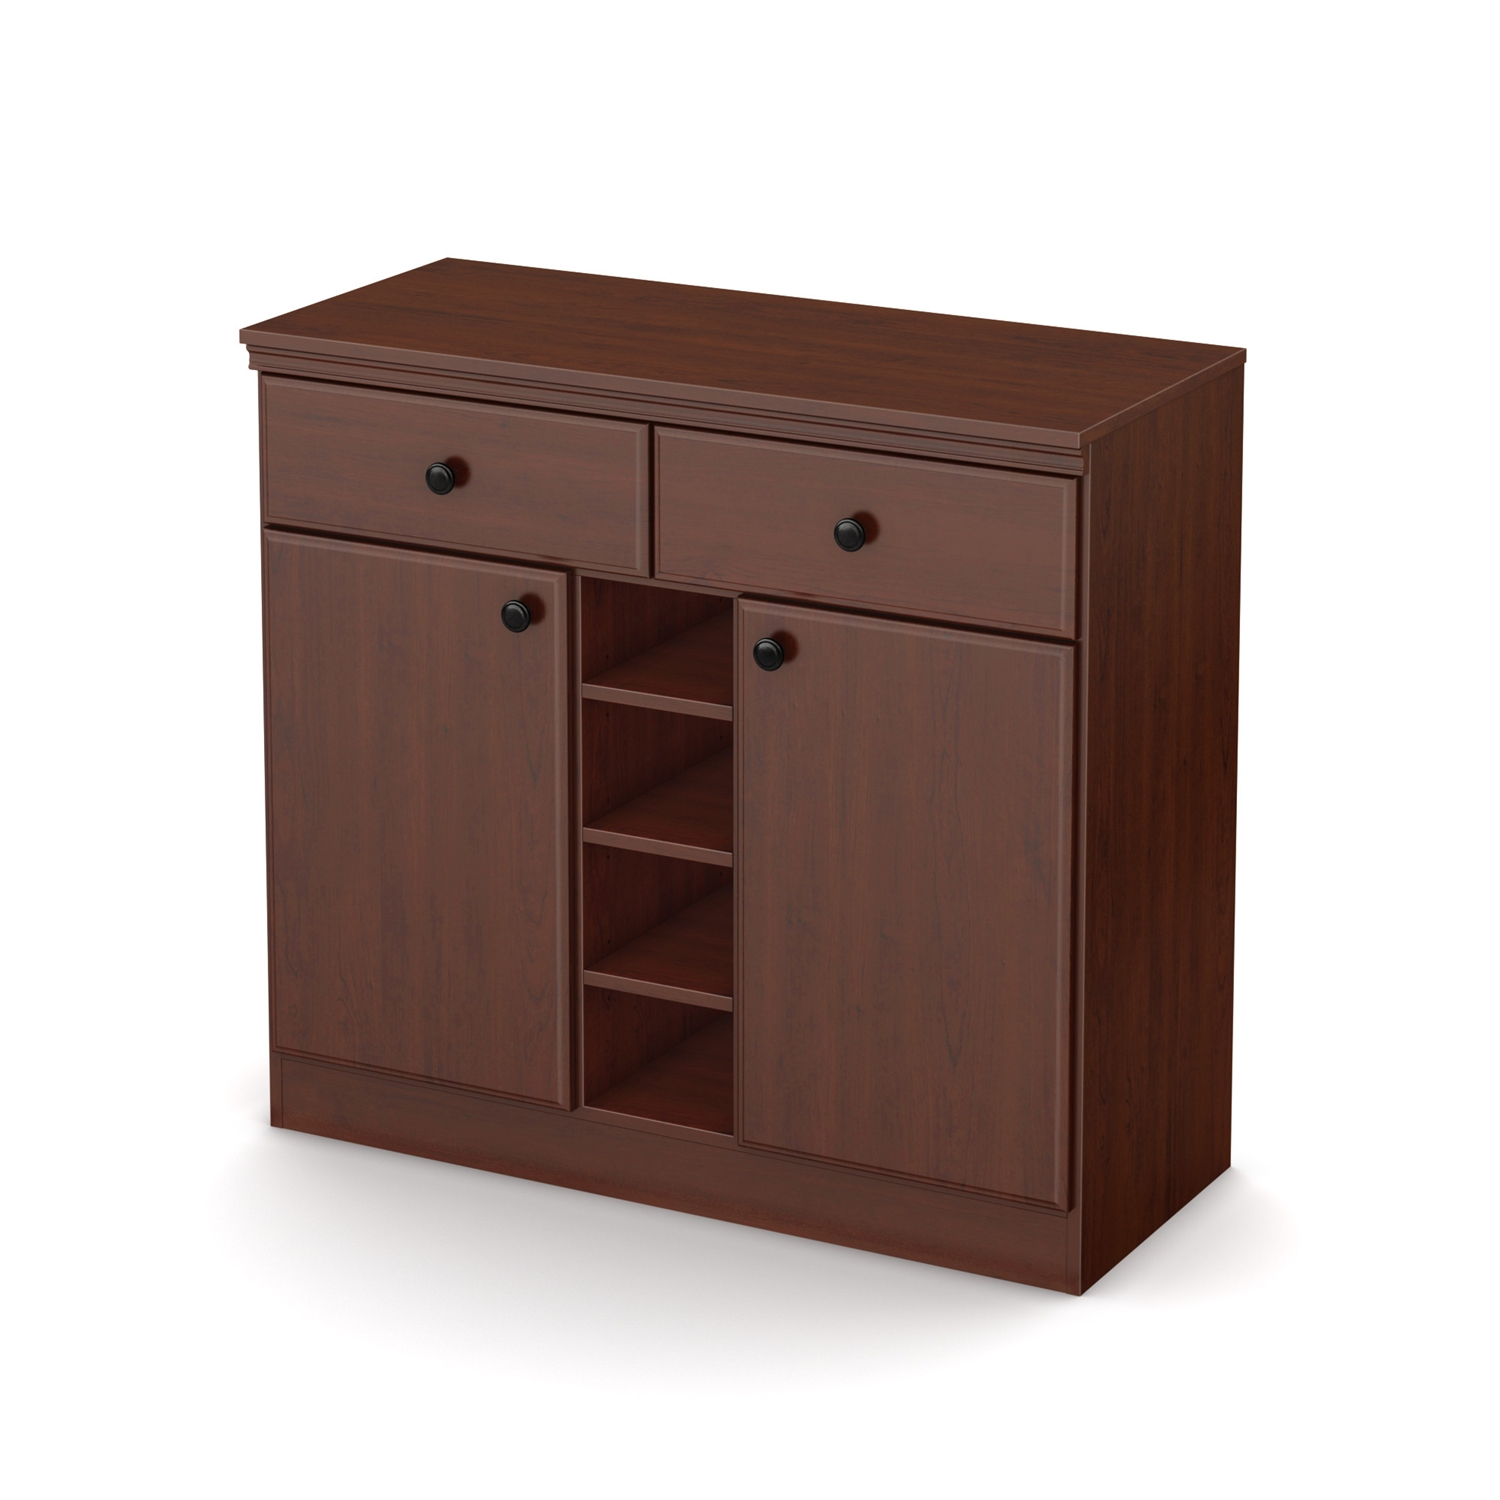 Dining room buffet sideboard console table in cherry wood finish retail price 33900 dzzzfo